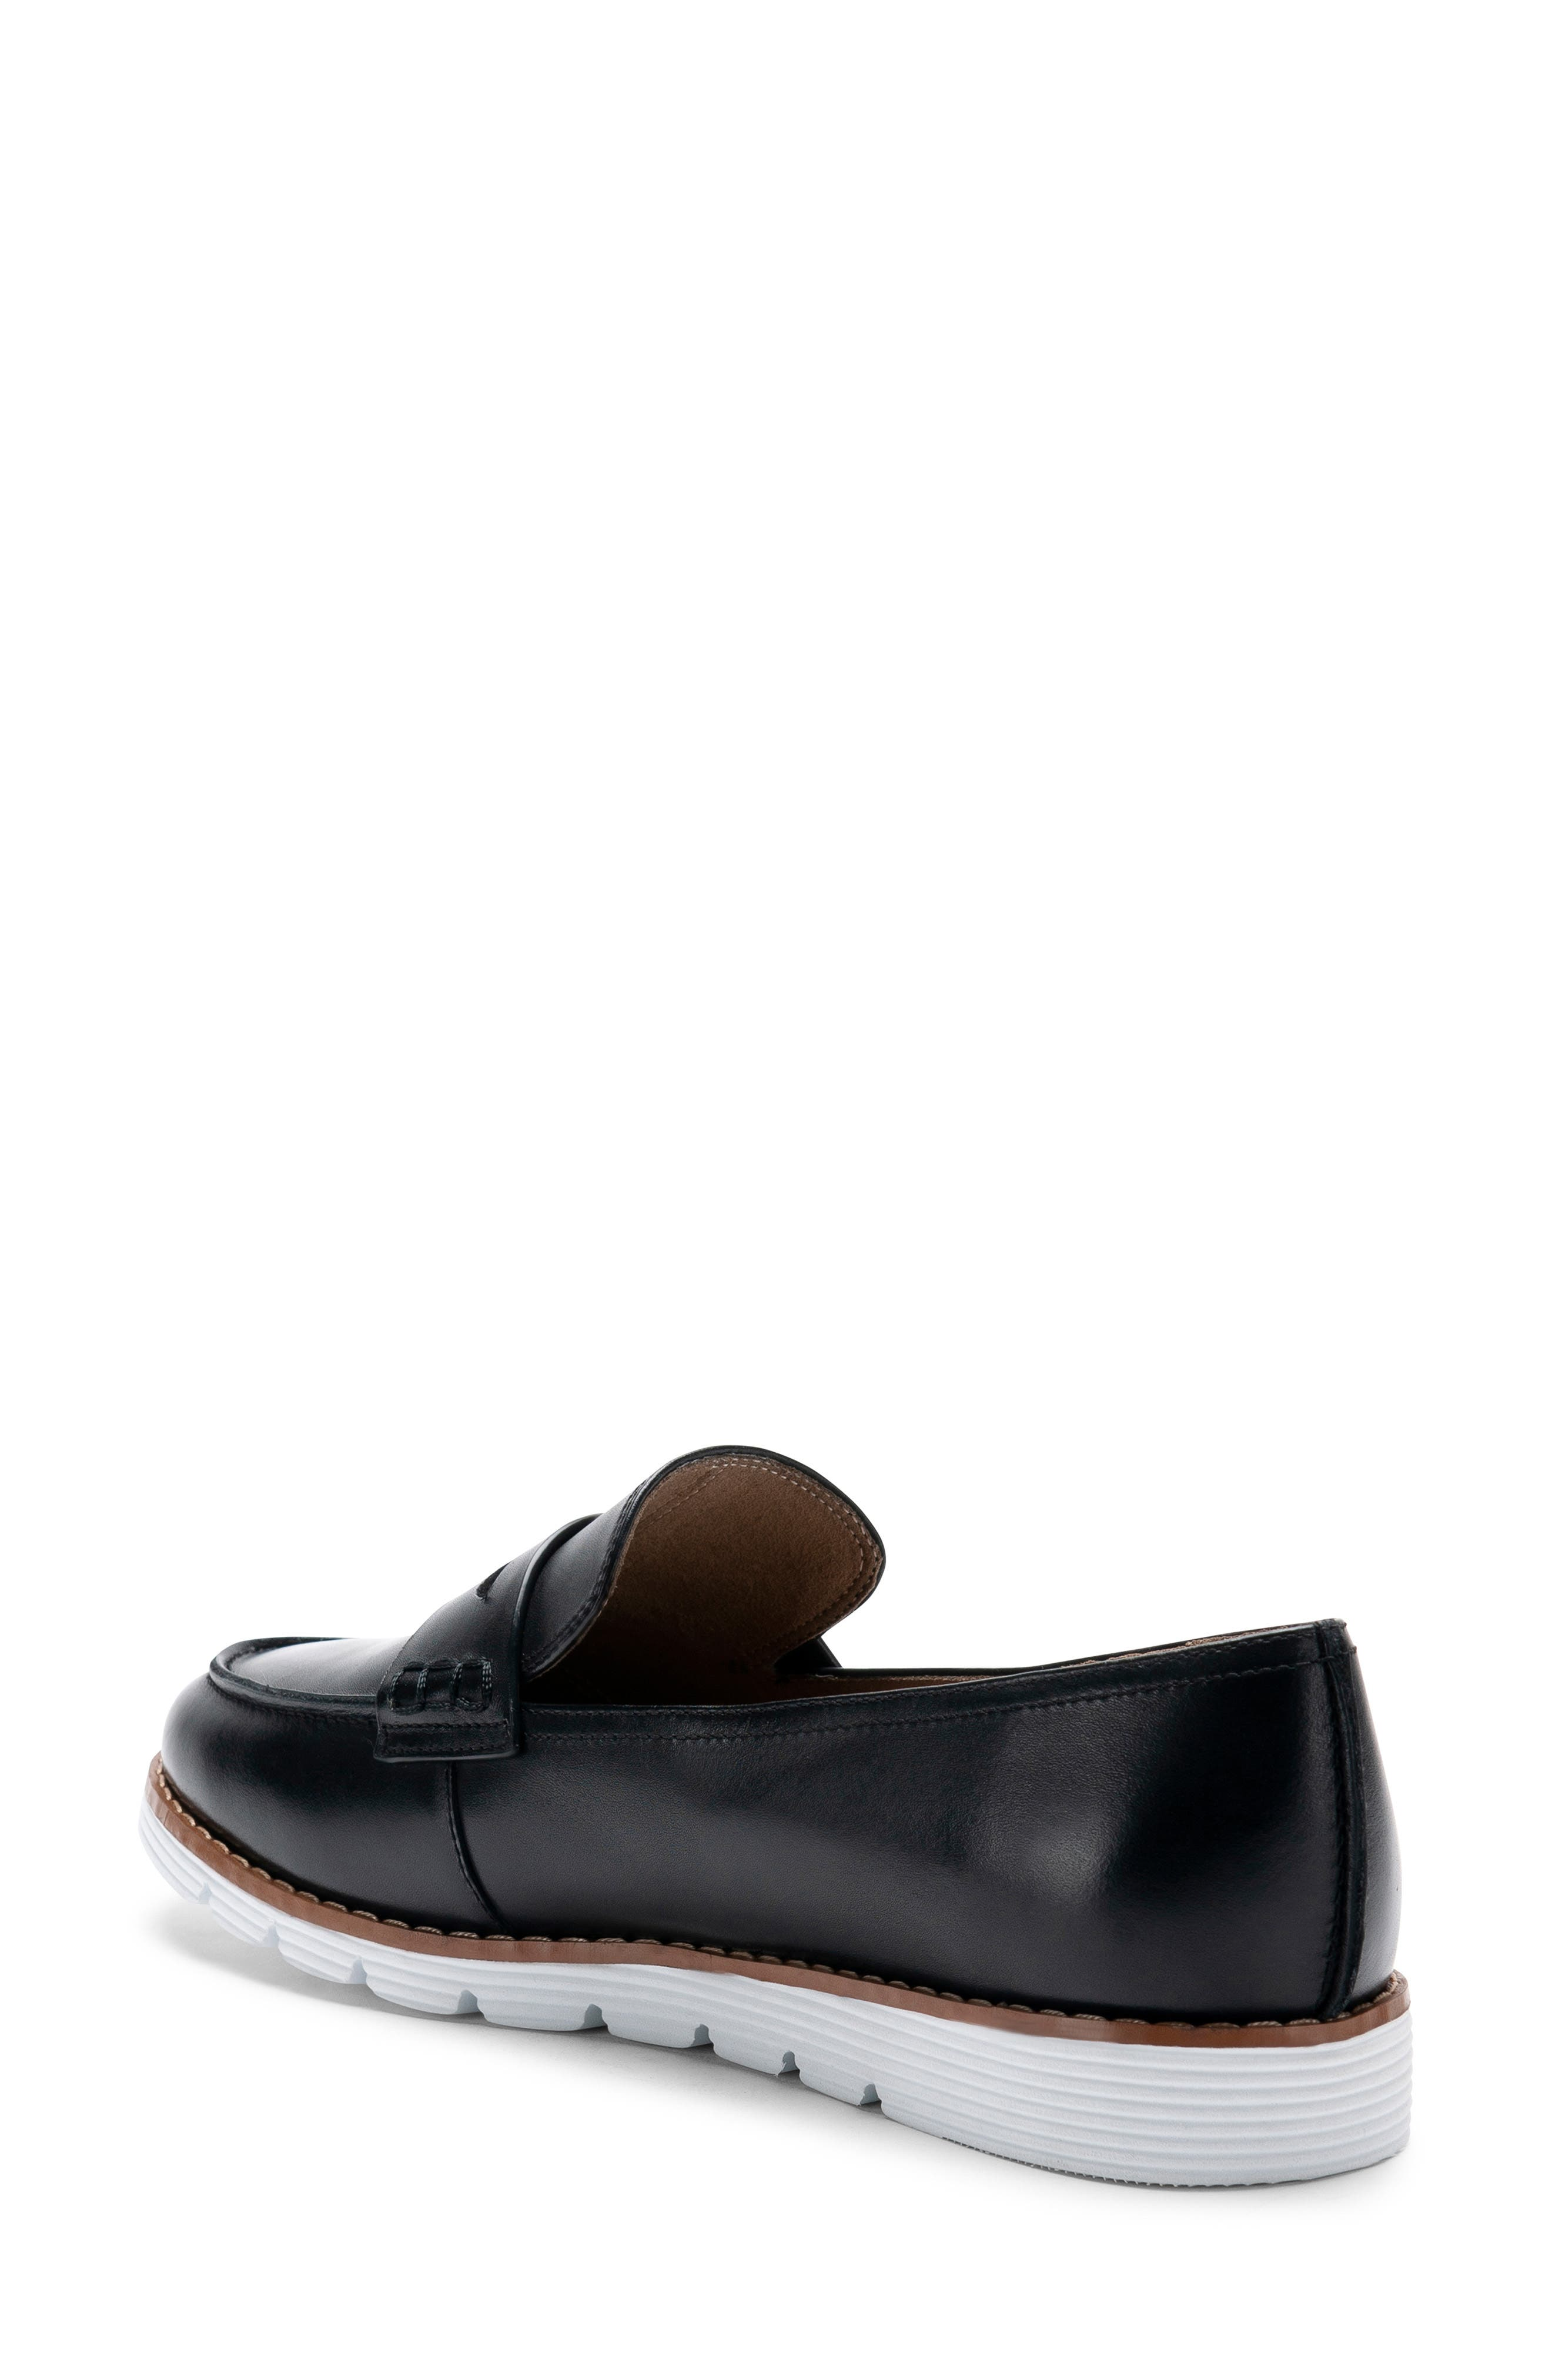 BLONDO, Waterproof Penny Loafer, Alternate thumbnail 2, color, BLACK LEATHER